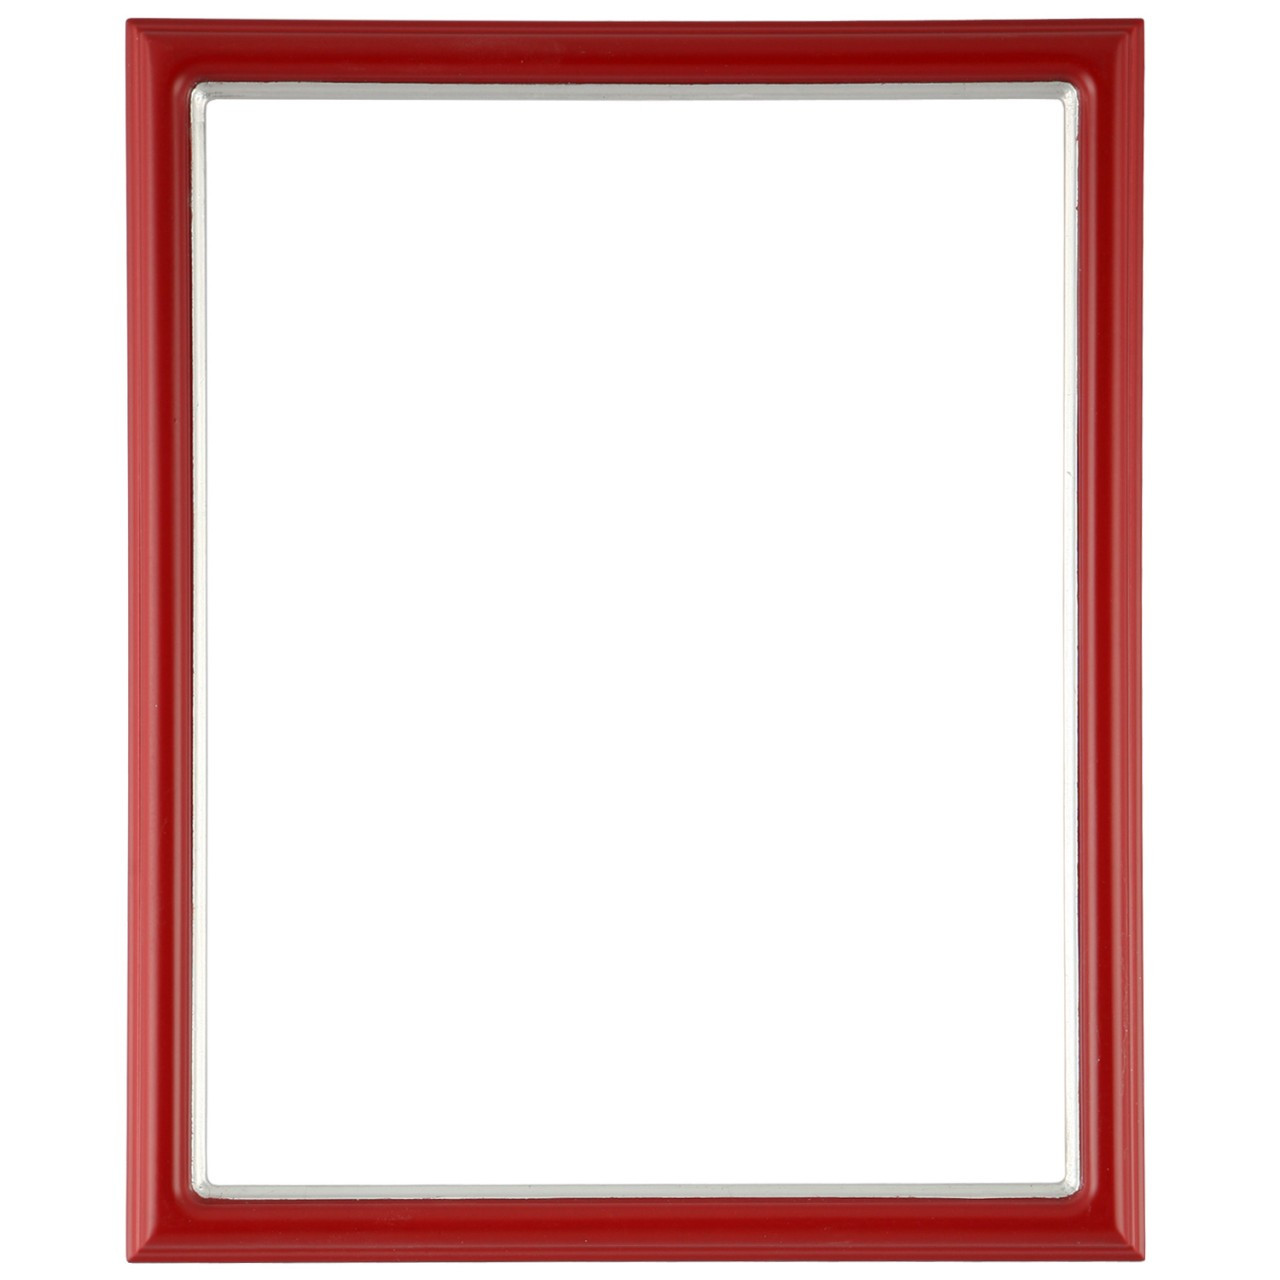 Rectangle Frame In Holiday Red Finish With Silver Lip